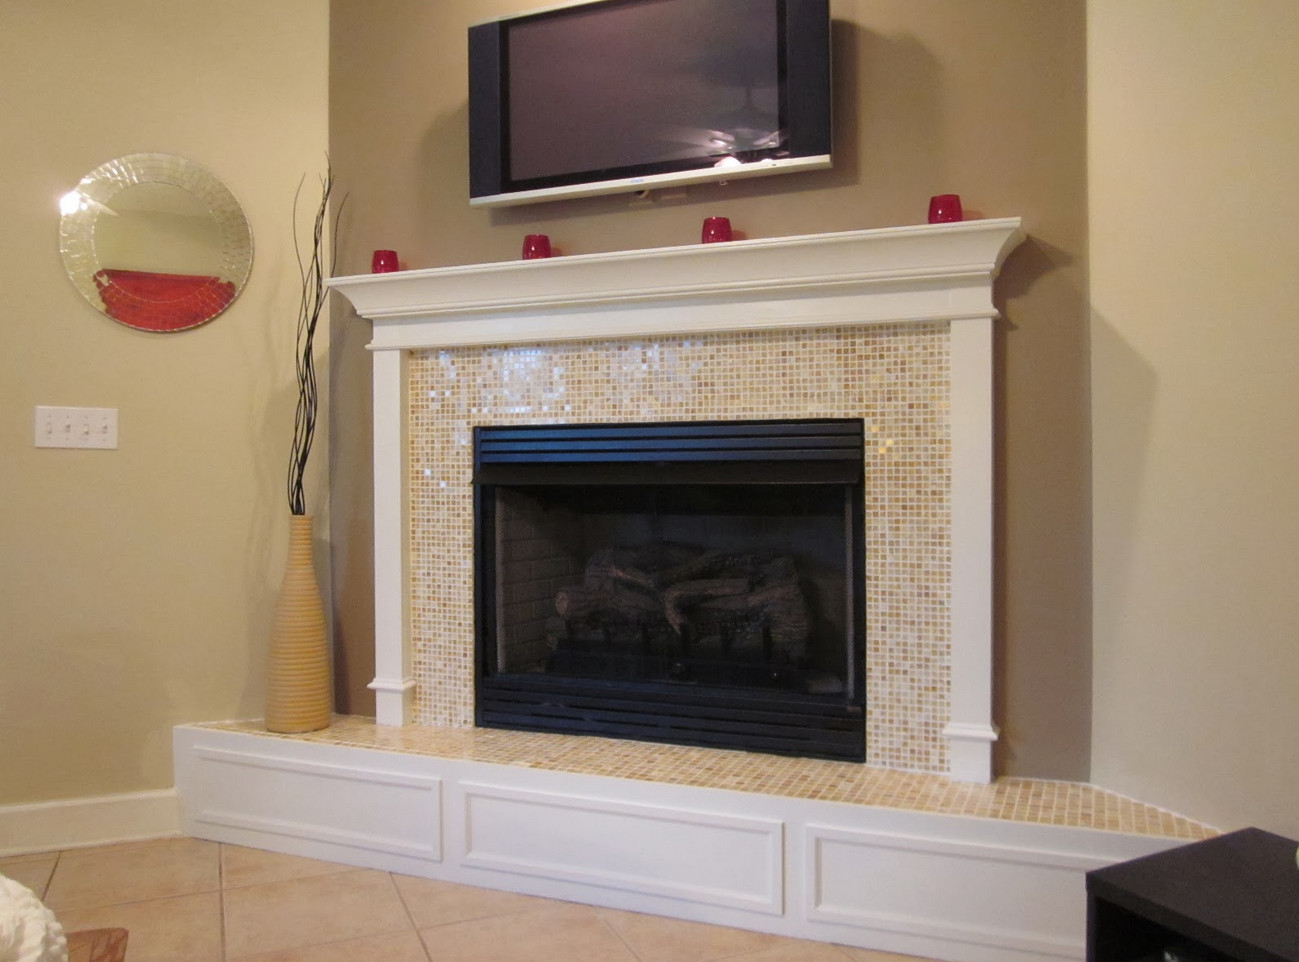 Fireplace Mantels And Surrounds Ideas Amusing Fireplace Mantels And Surrounds Ideas  Interior Design Ideas Review